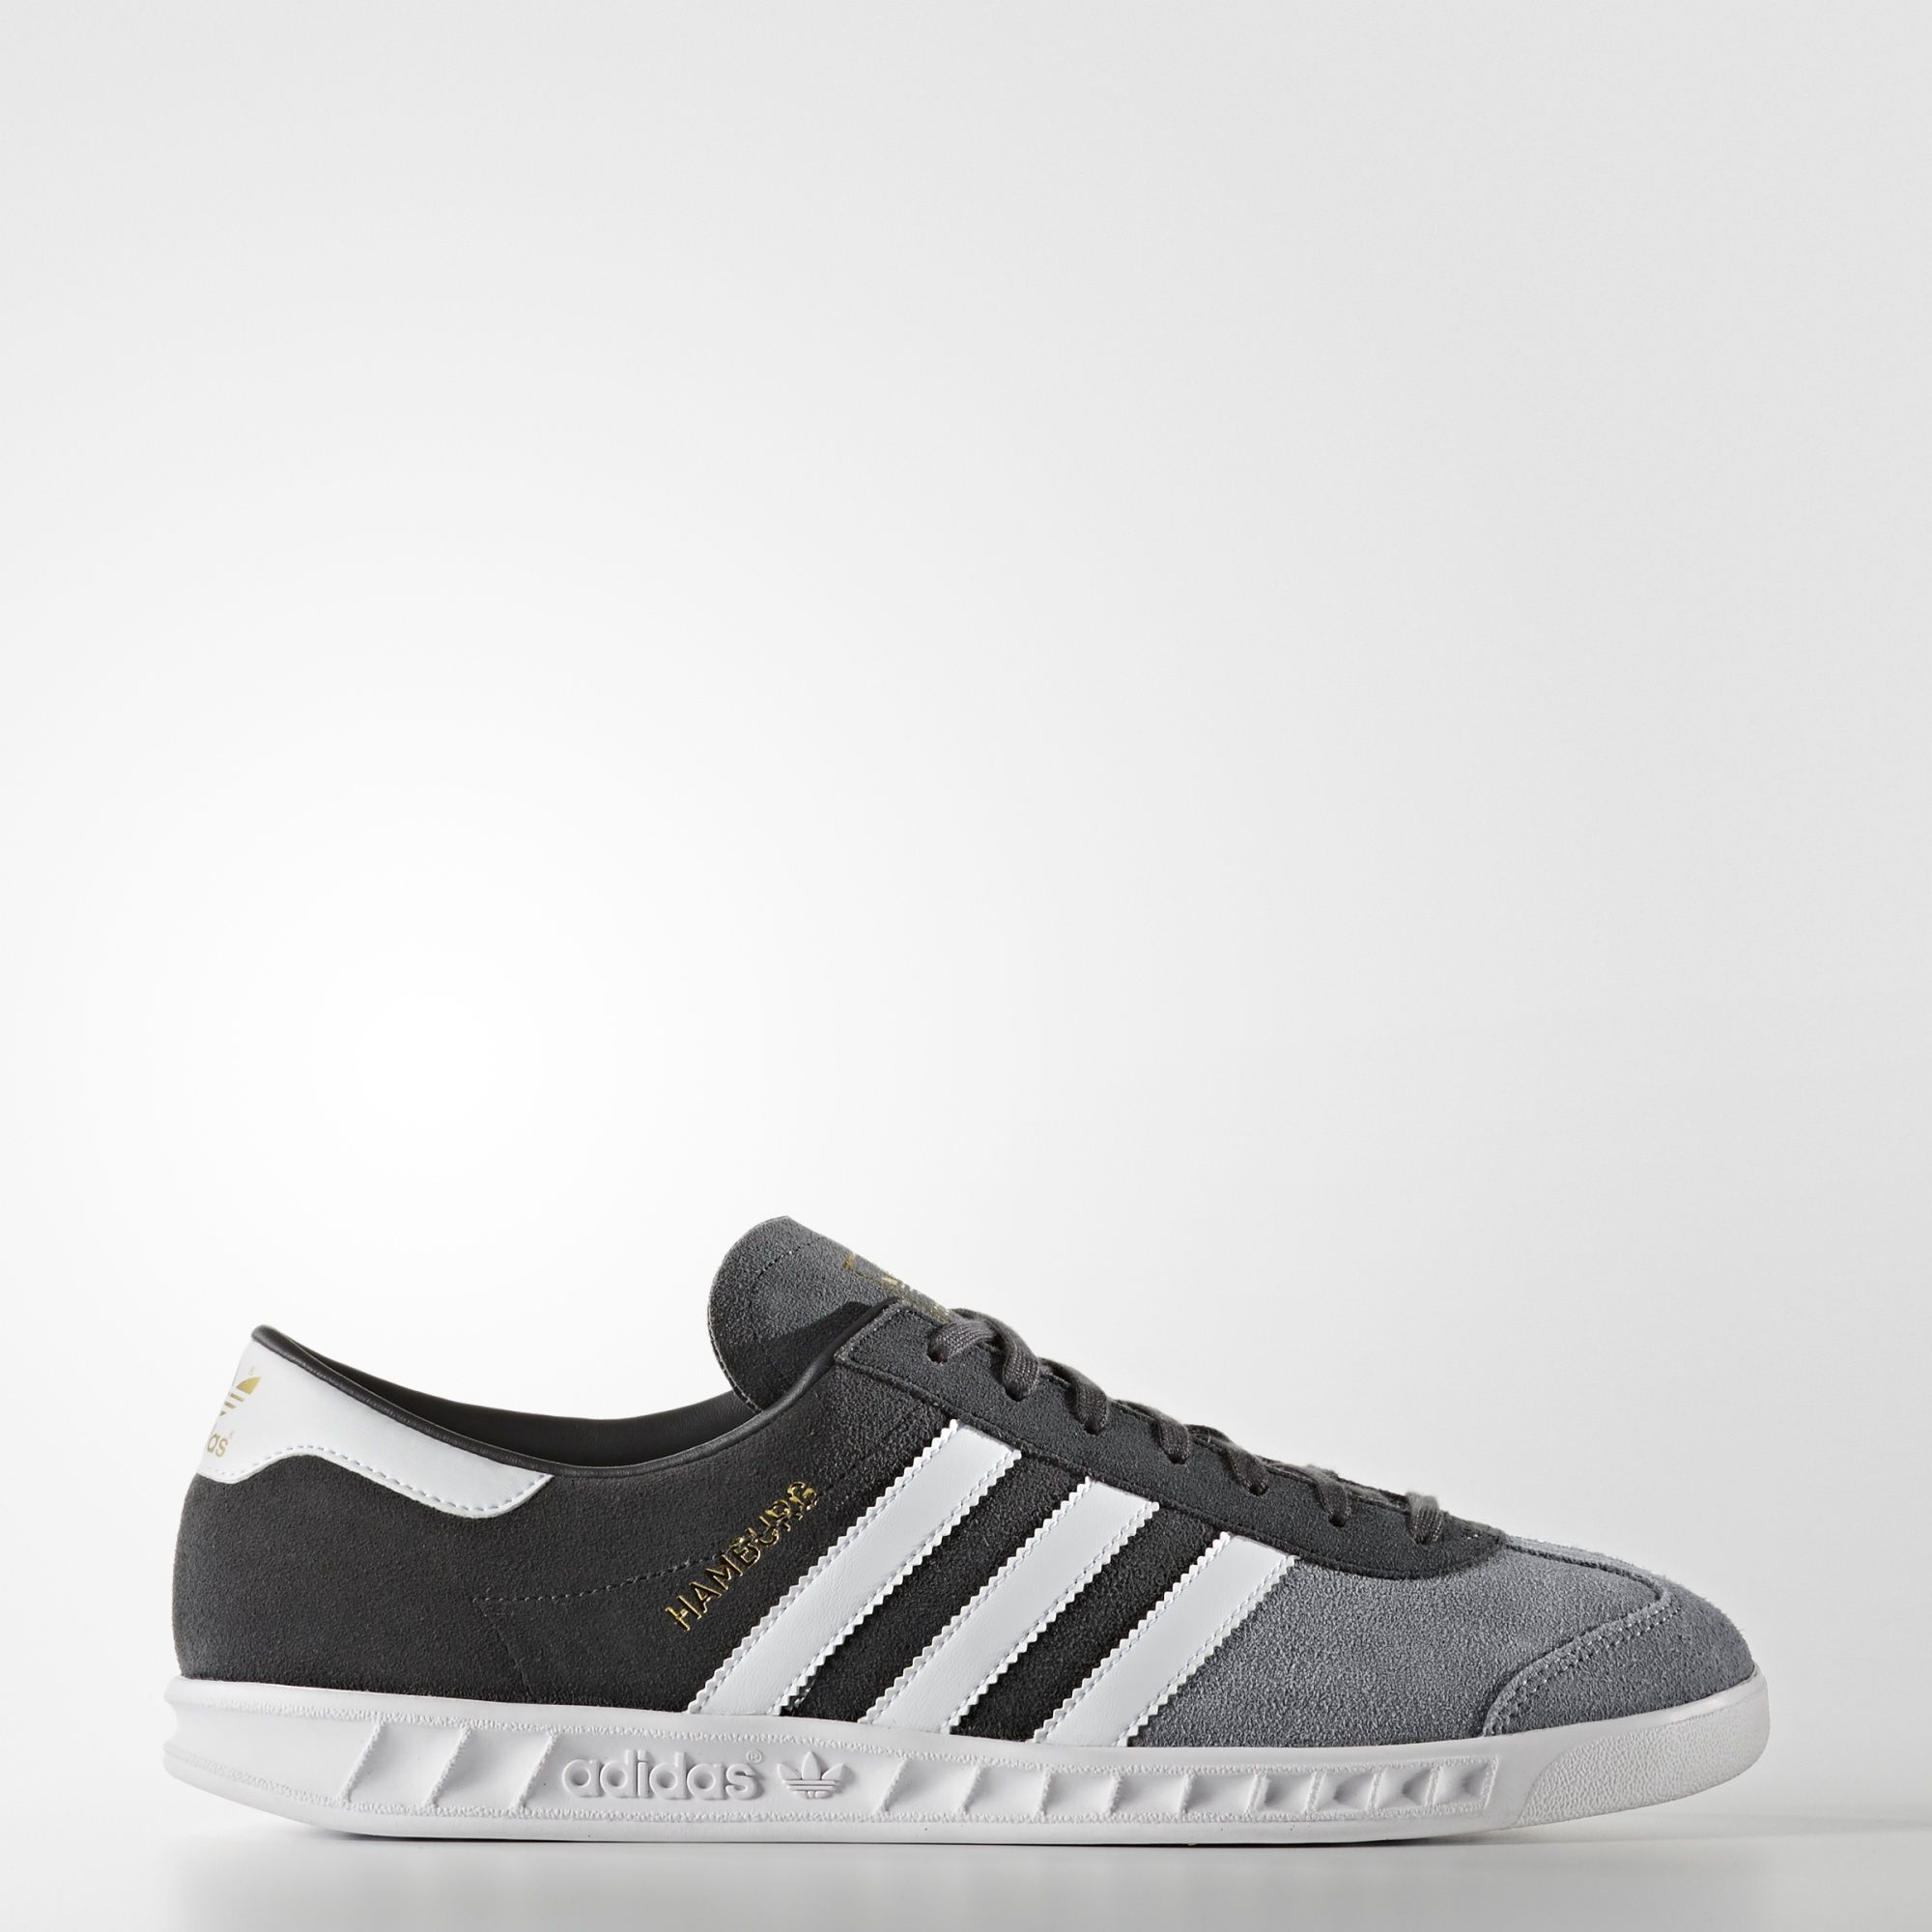 adidas hamburgs black and grey